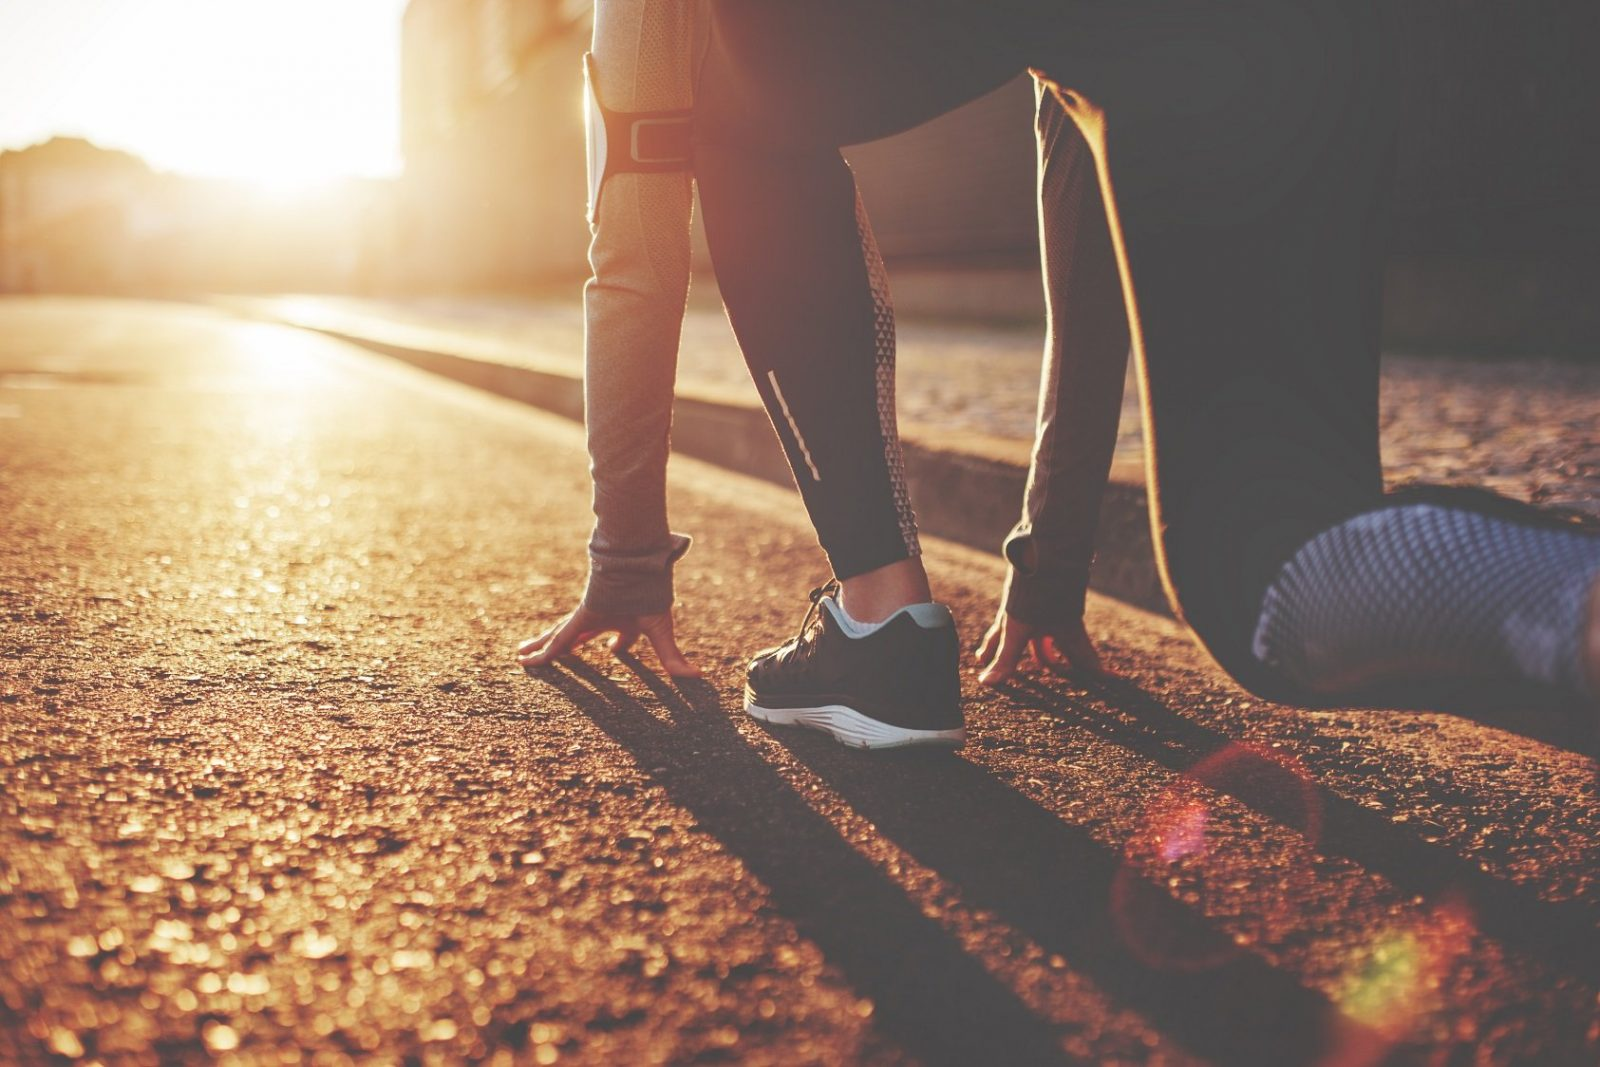 A woman crouches on the pavement ready to begin running as the sun begins to rise.